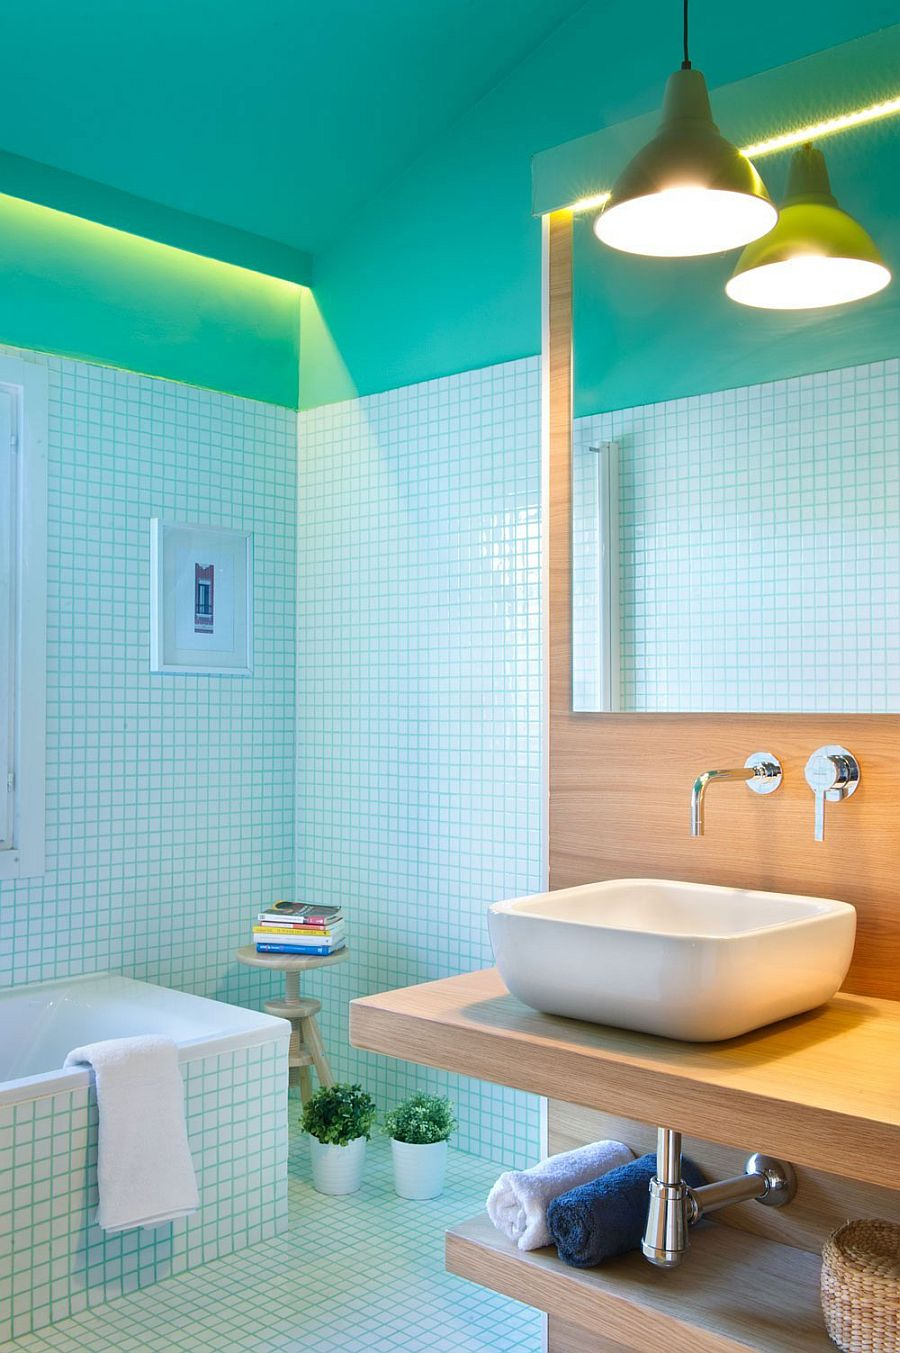 Tiles create a unique visual in the relaxing bathroom